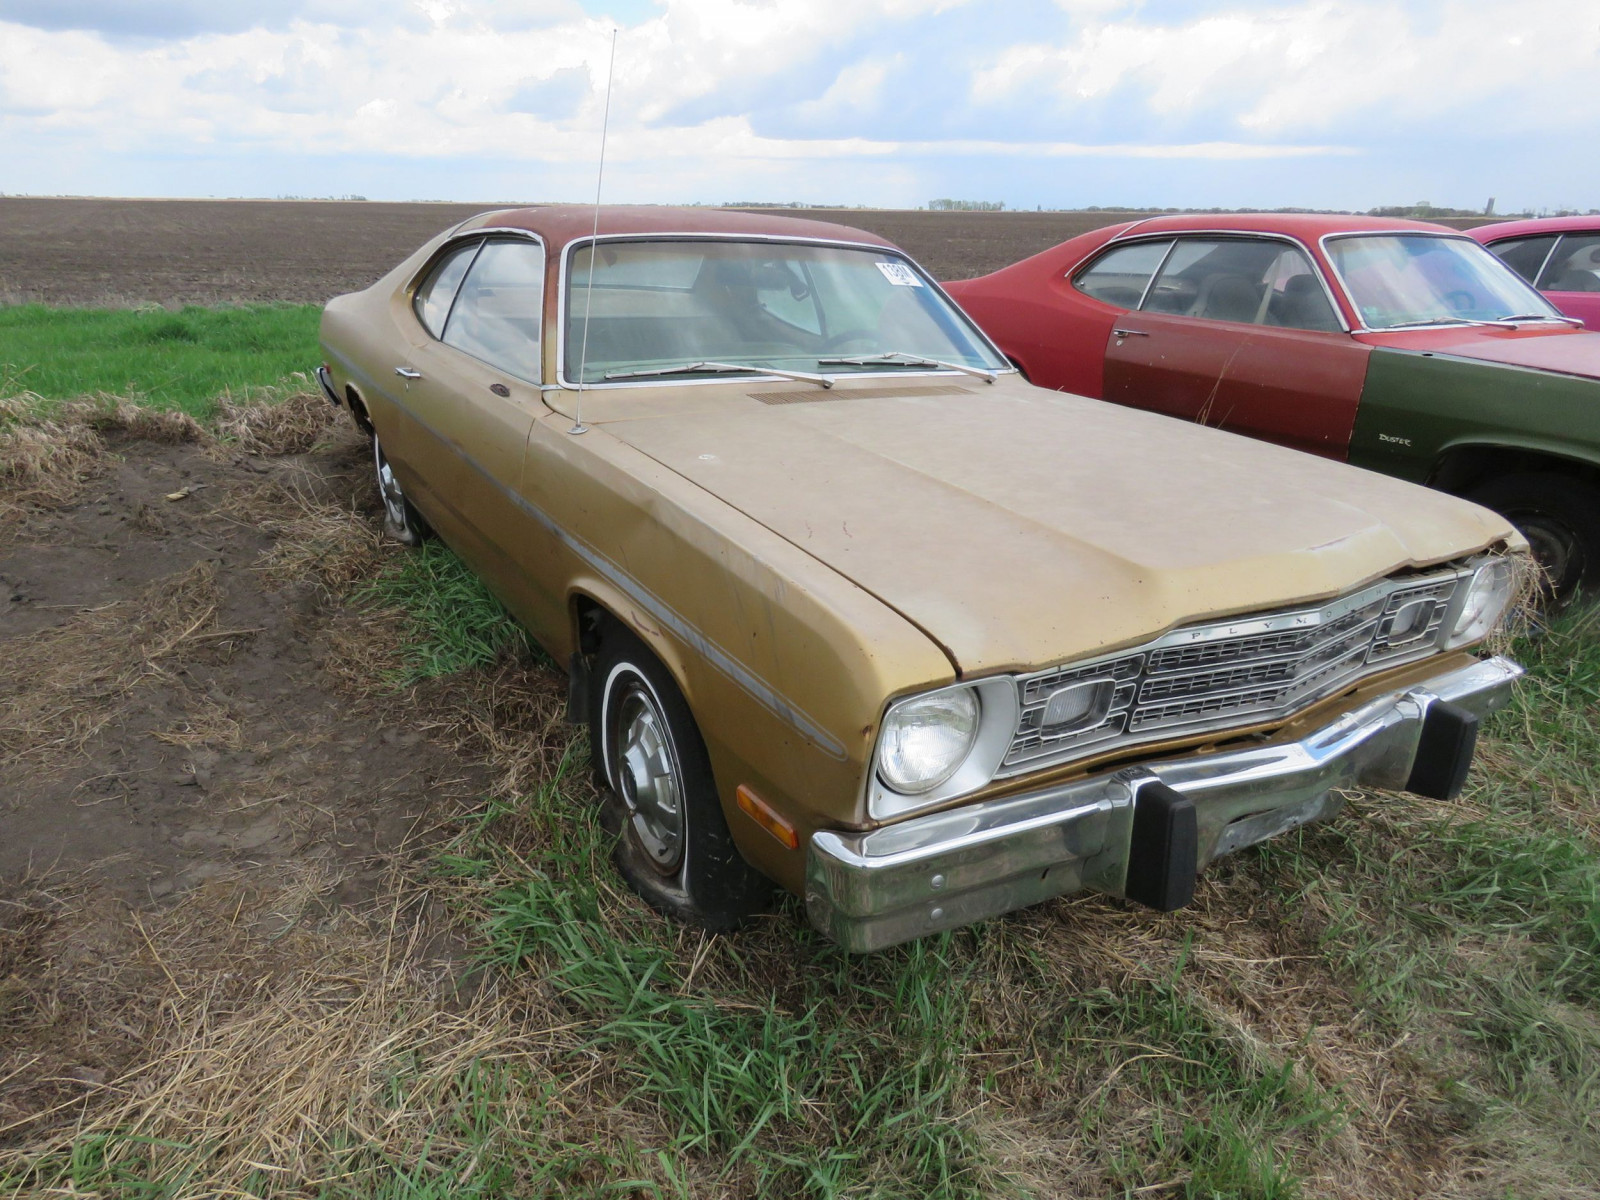 1974 Plymouth Duster Coupe - Image 1